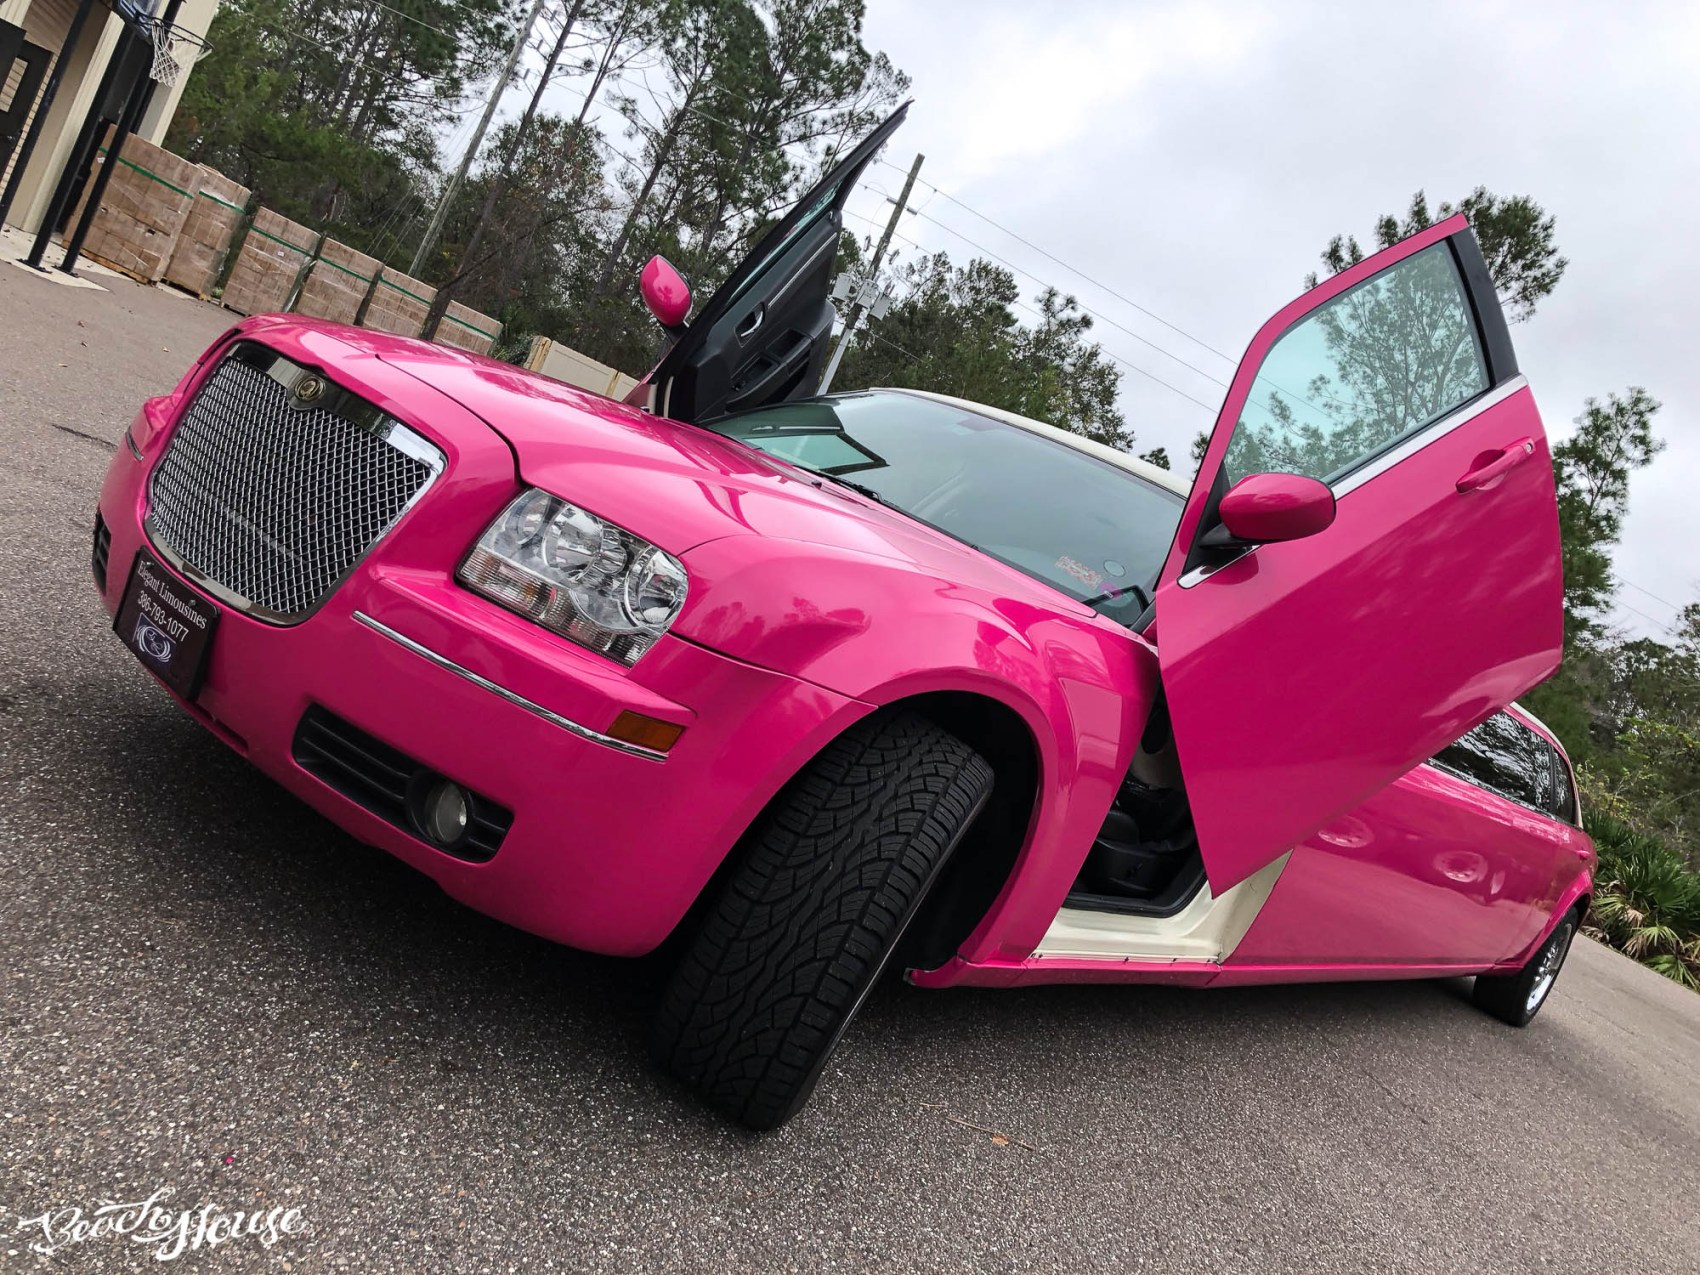 Limo Wrap - Color Change to Pink